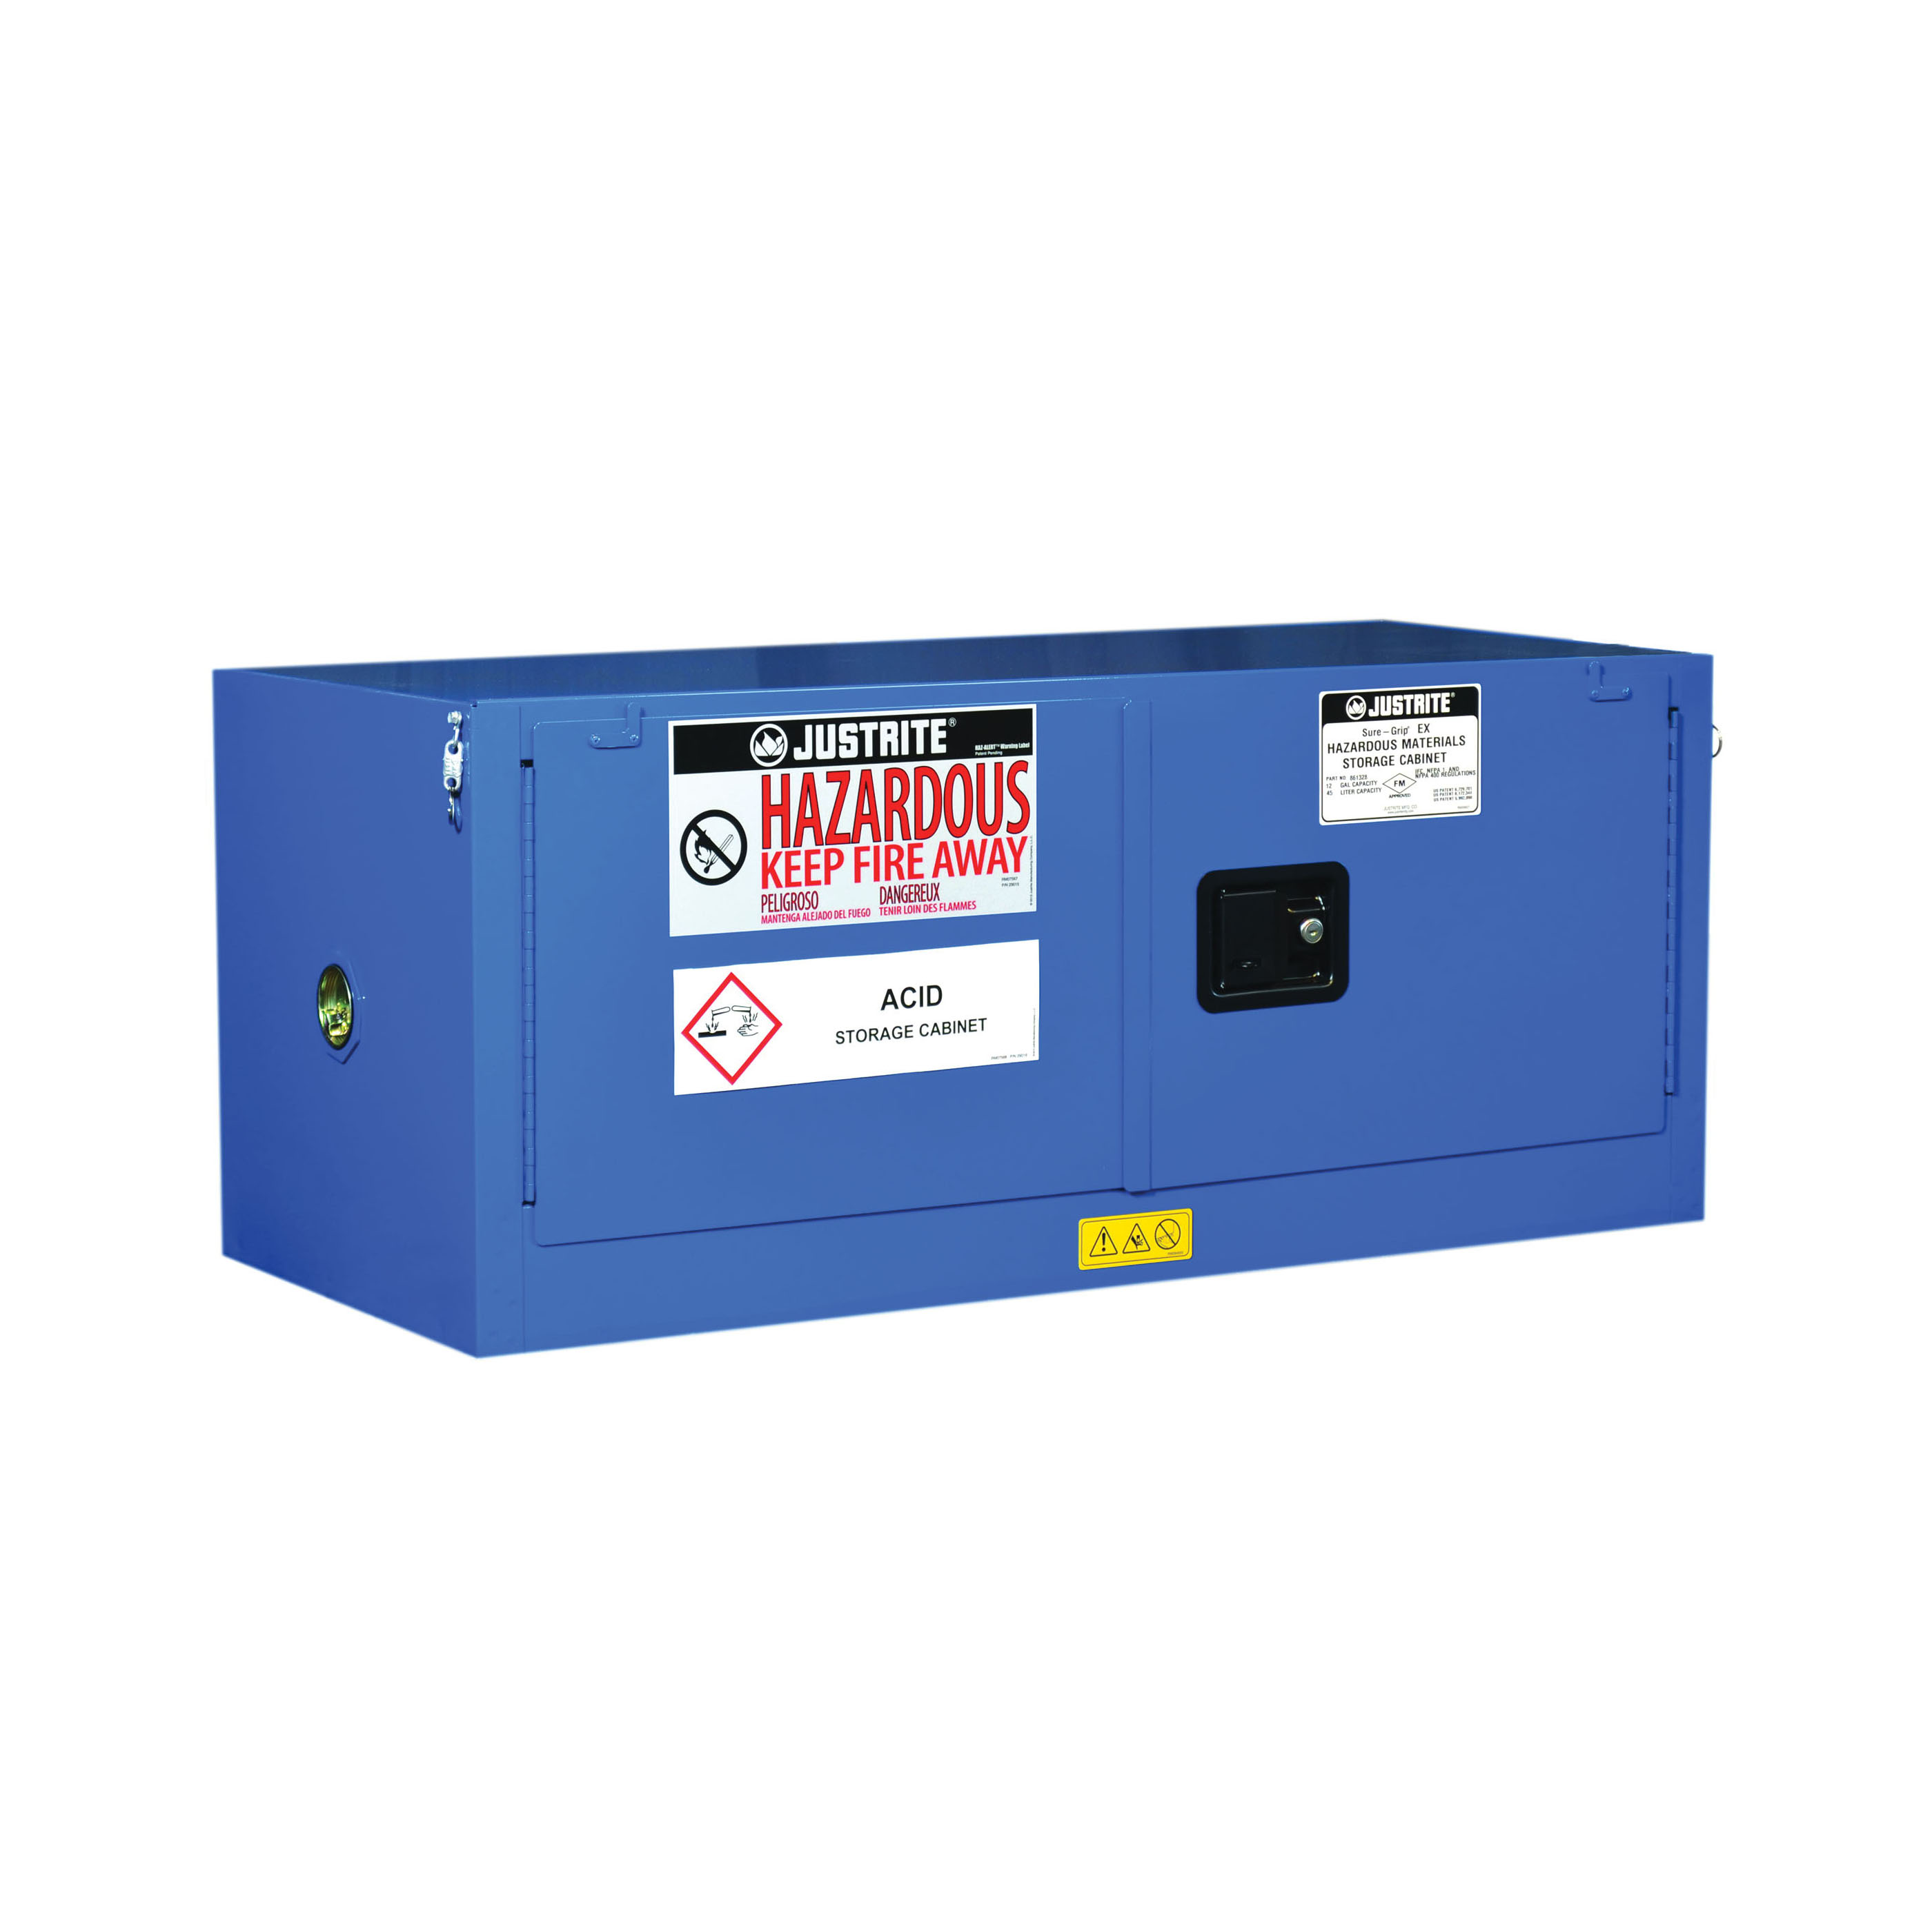 Justrite® 8613282 ChemCor® Piggyback Corrosive Safety Cabinet, 12 gal Capacity, U-Loc™ Handle, 18 in H x 43 in W x 18 in D, Self-Close Door, 2 Doors, 18 ga Cold Rolled Steel, Royal Blue